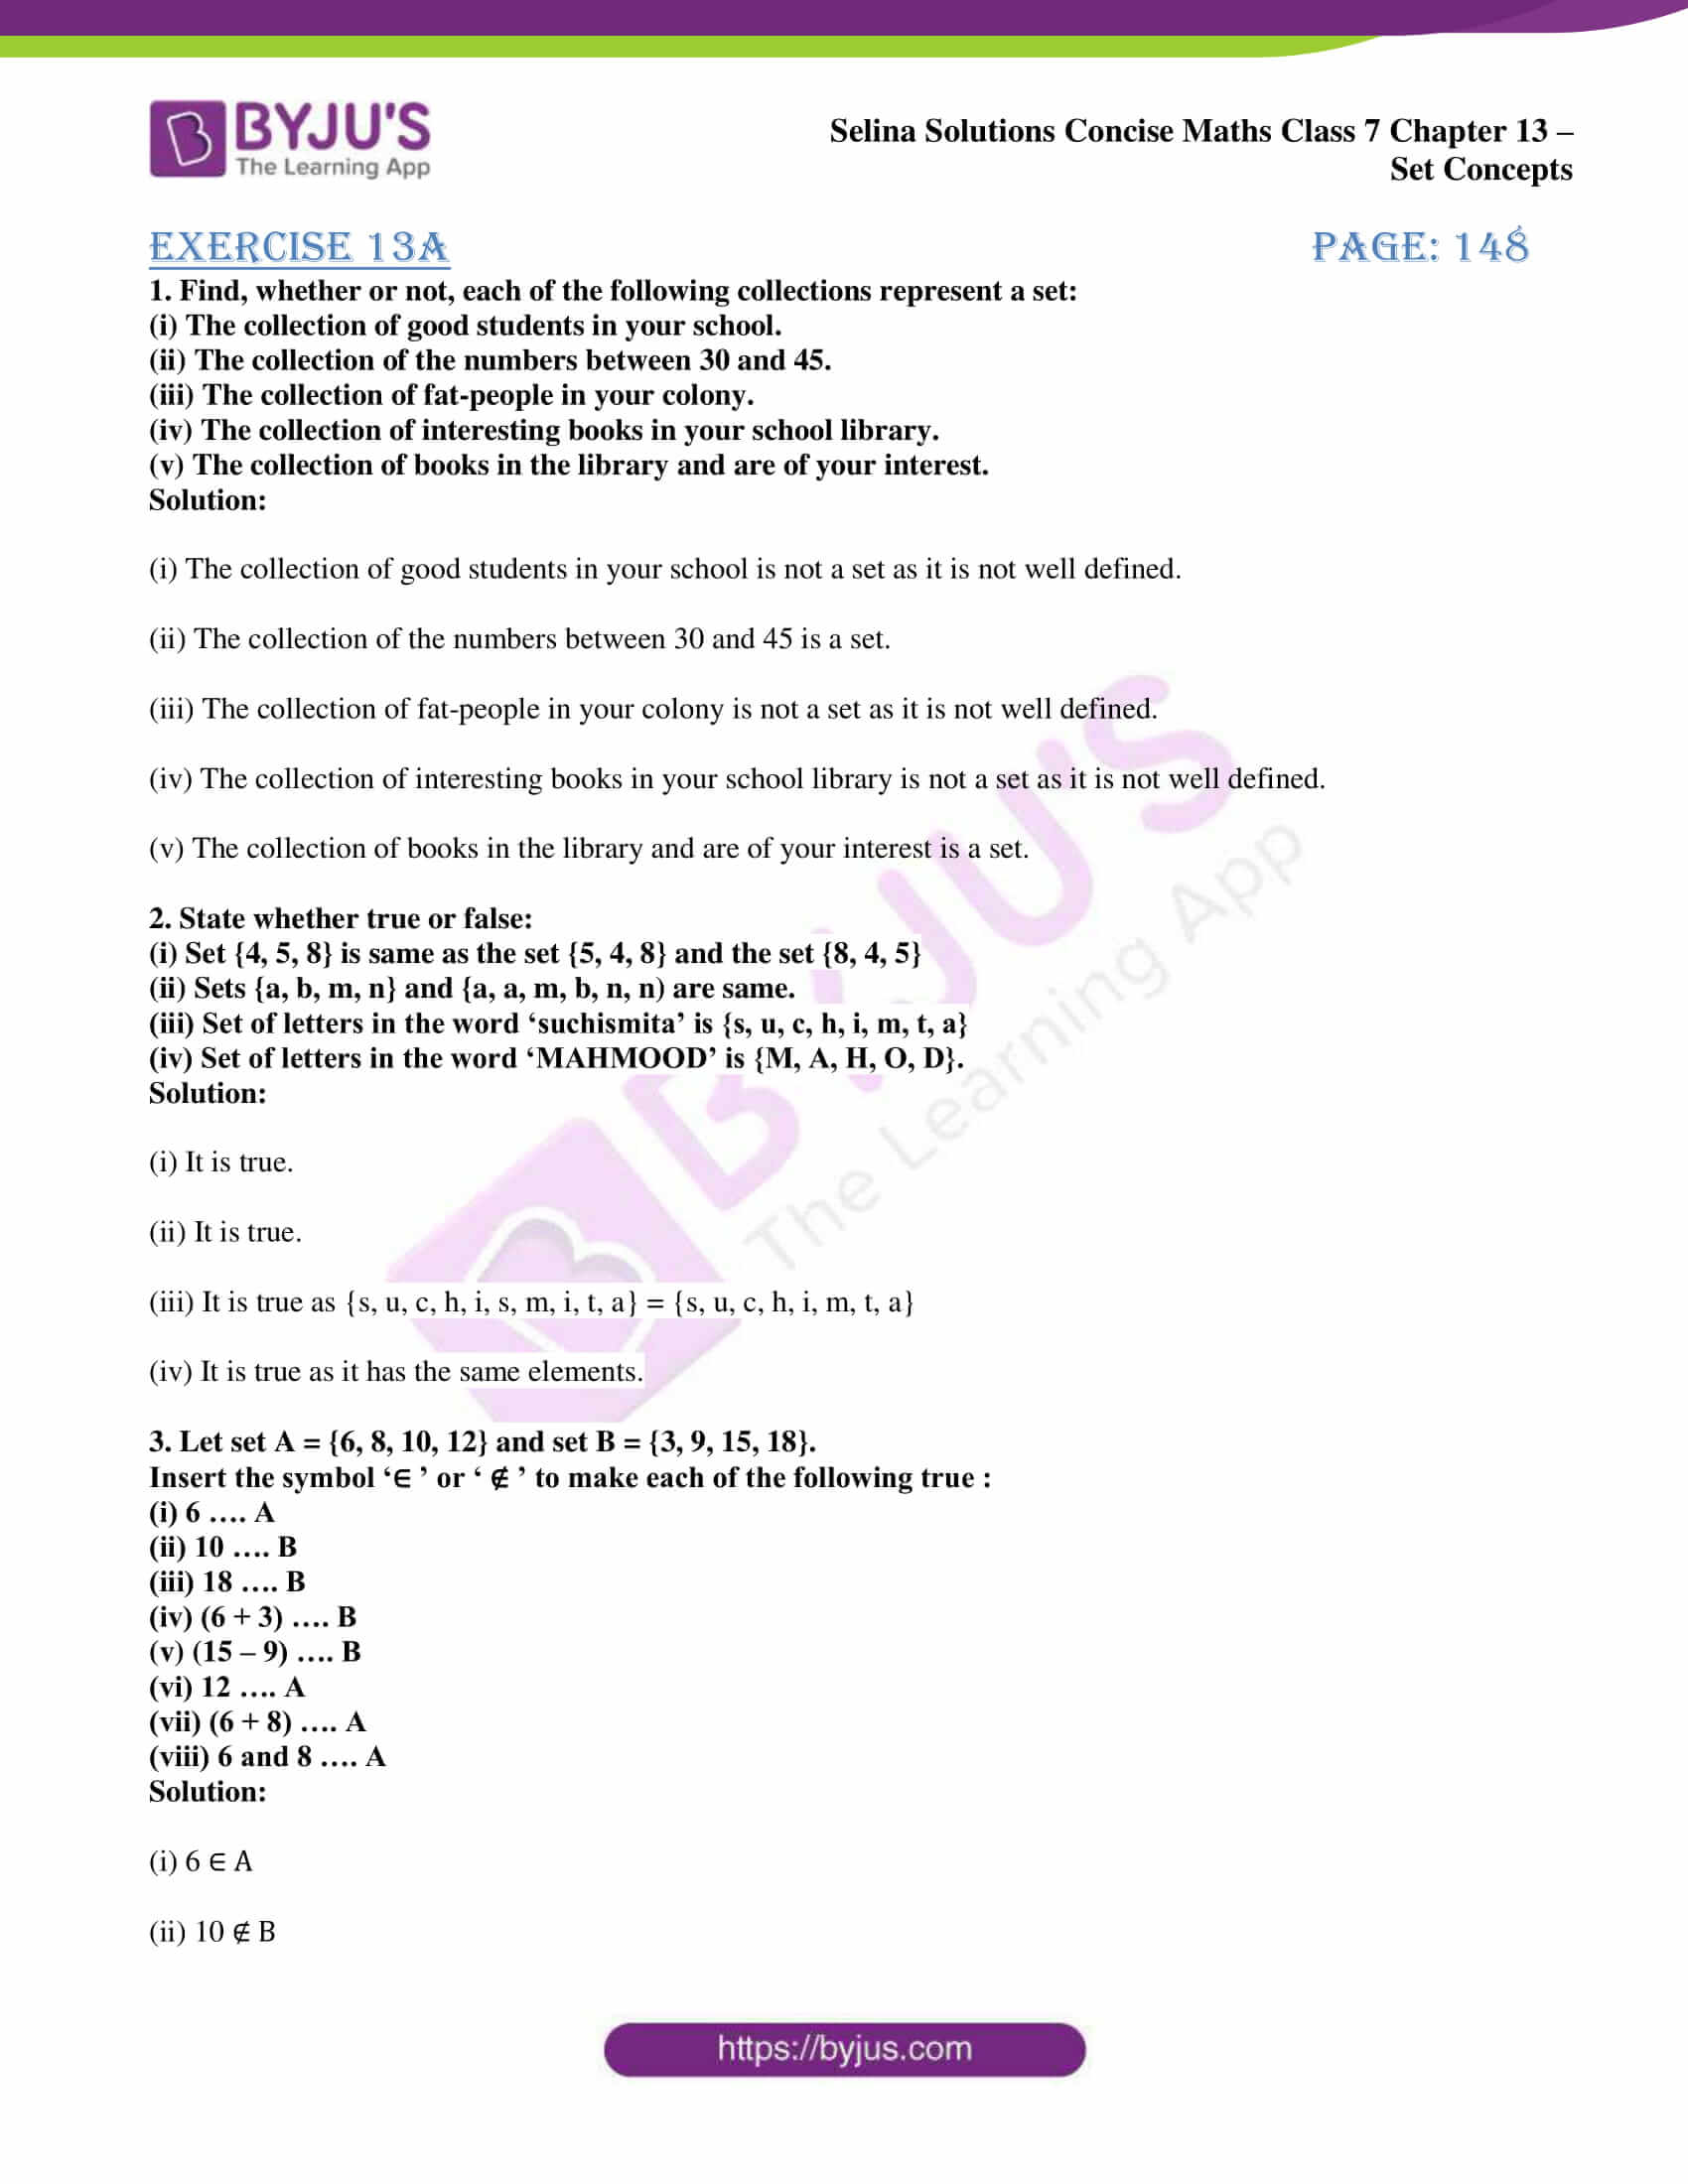 selina solution concise maths class 7 ch 13a 1